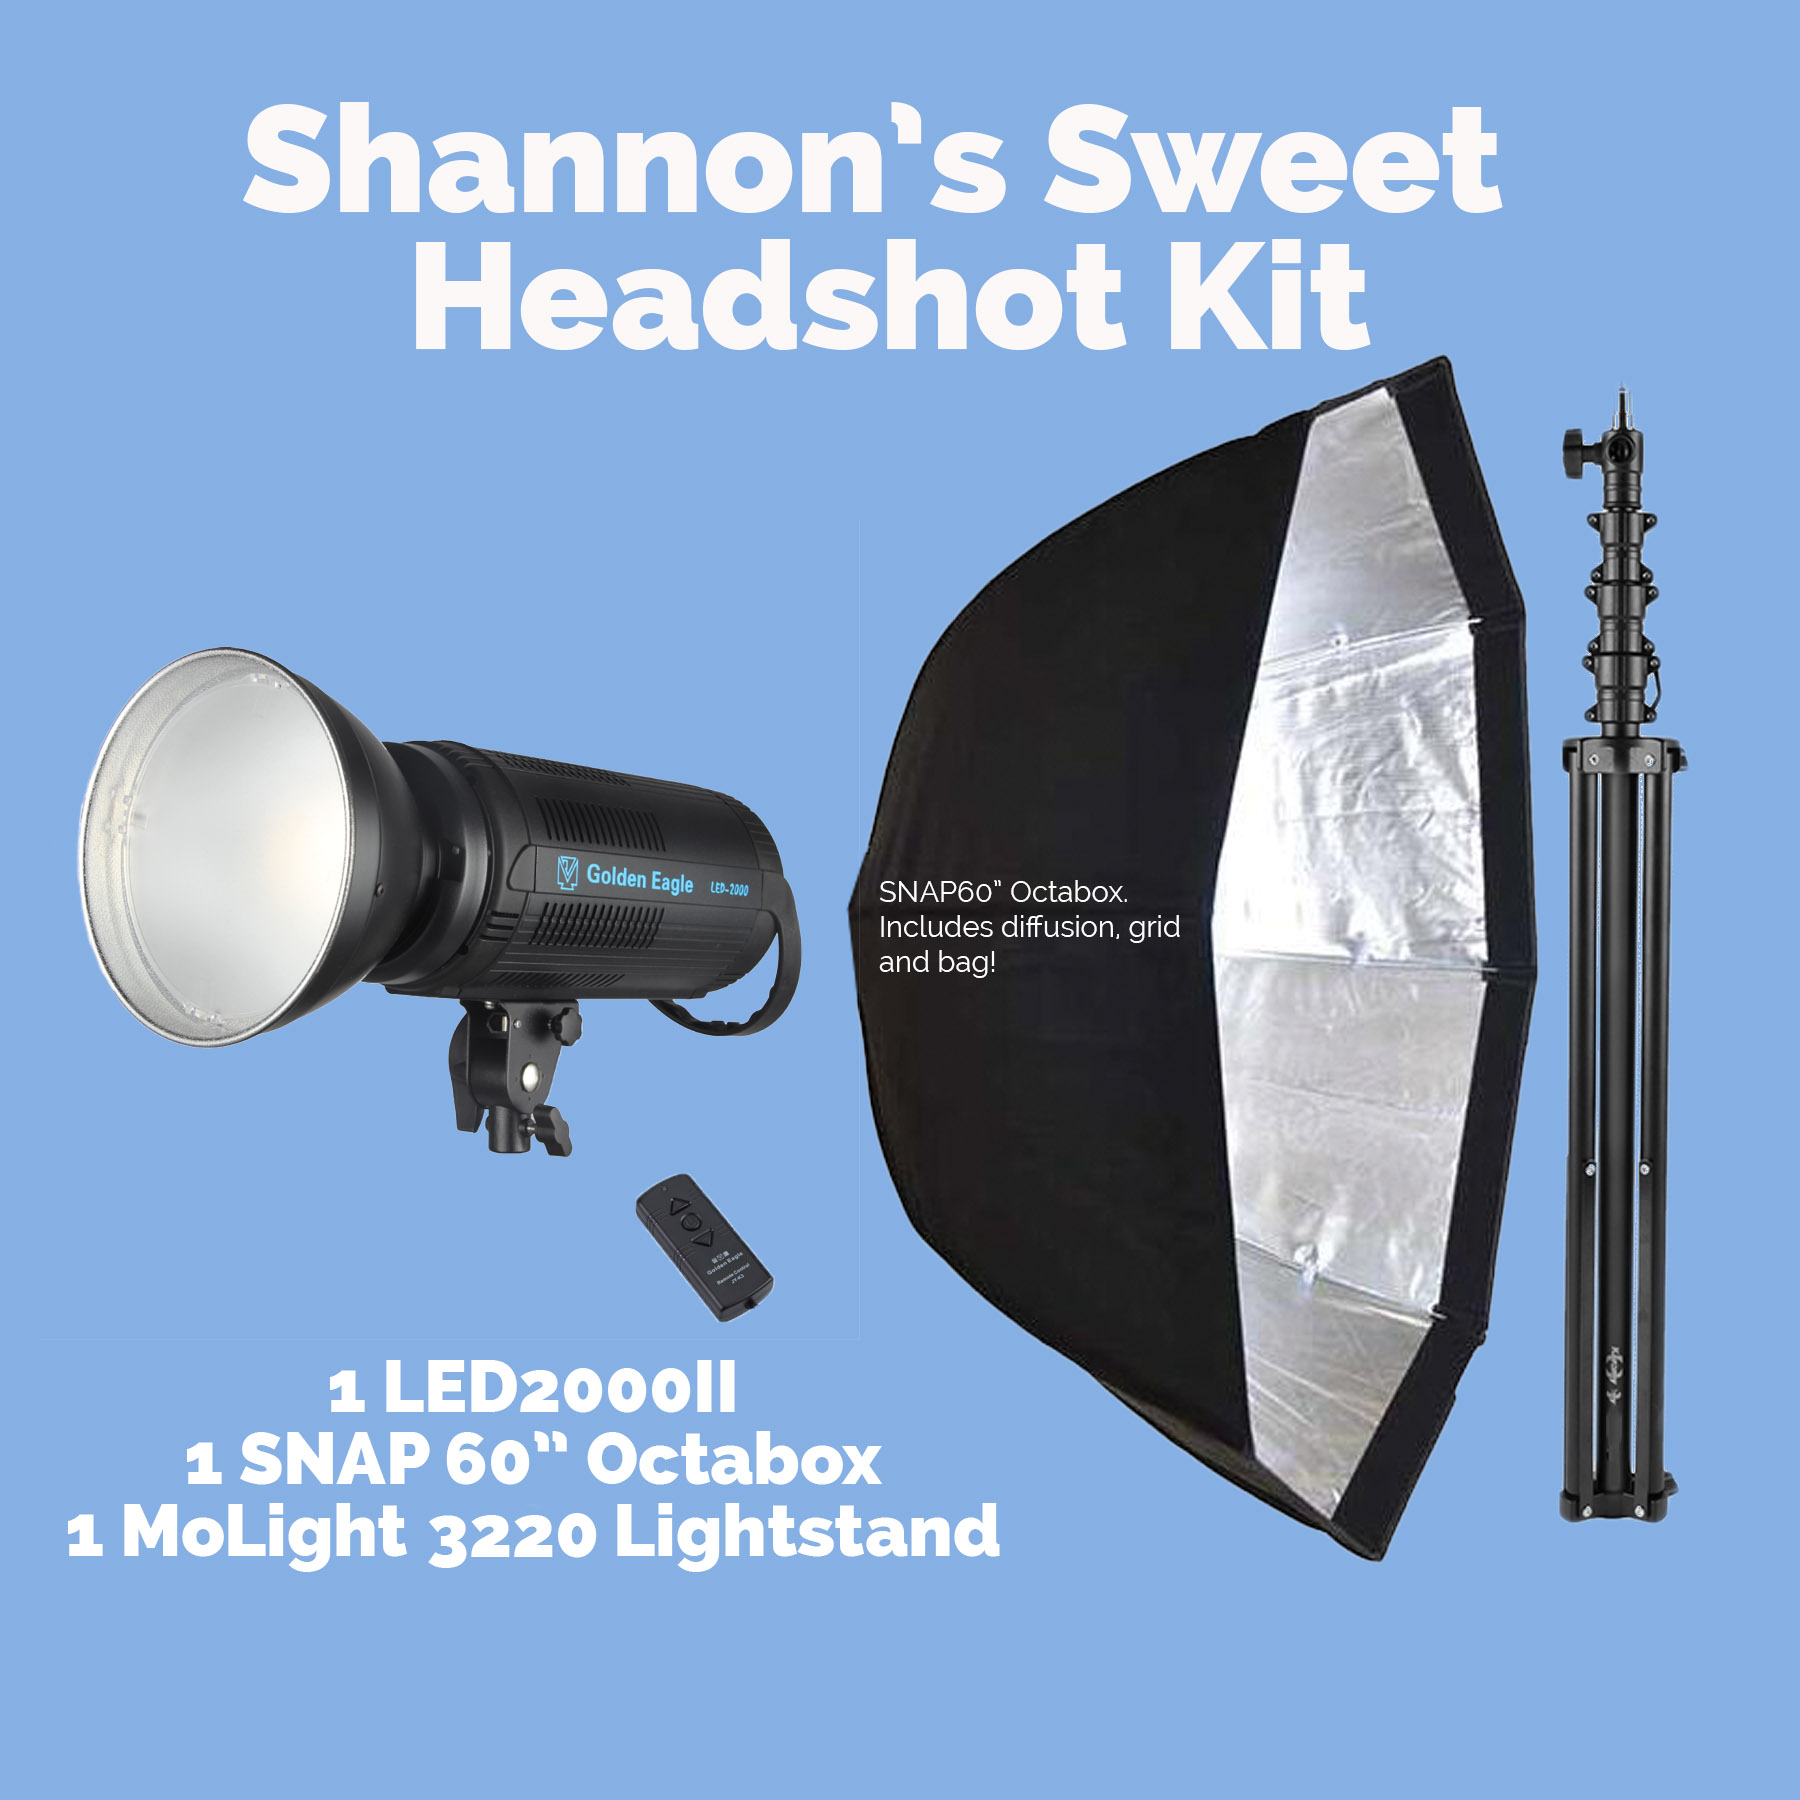 Shannon's Sweet Headshot Kit